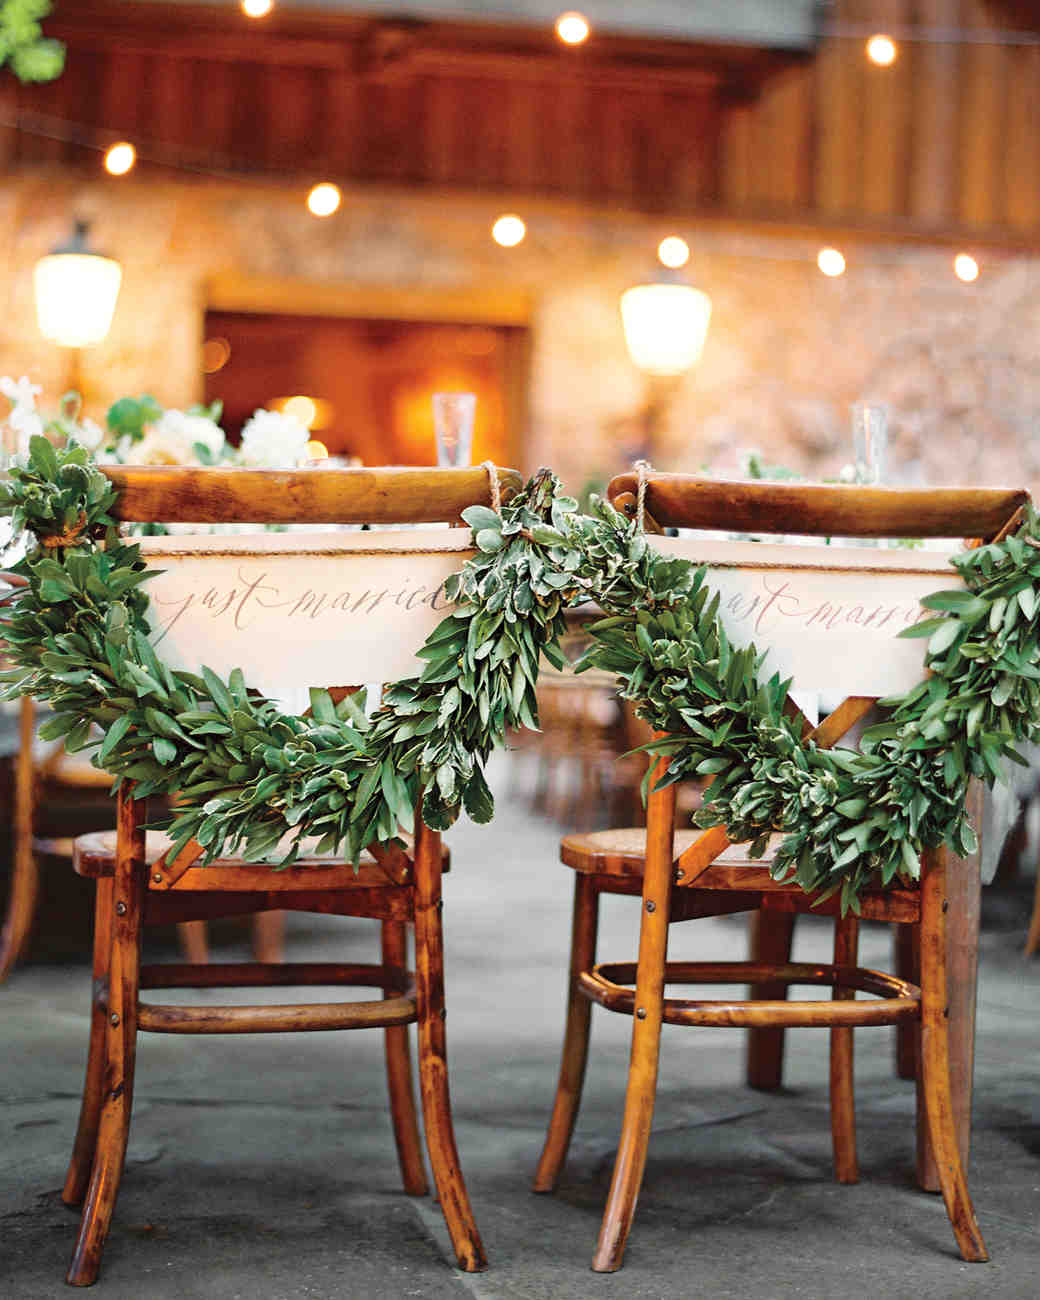 """Just Married"" Signs with Garlands on Couple's Chairs"